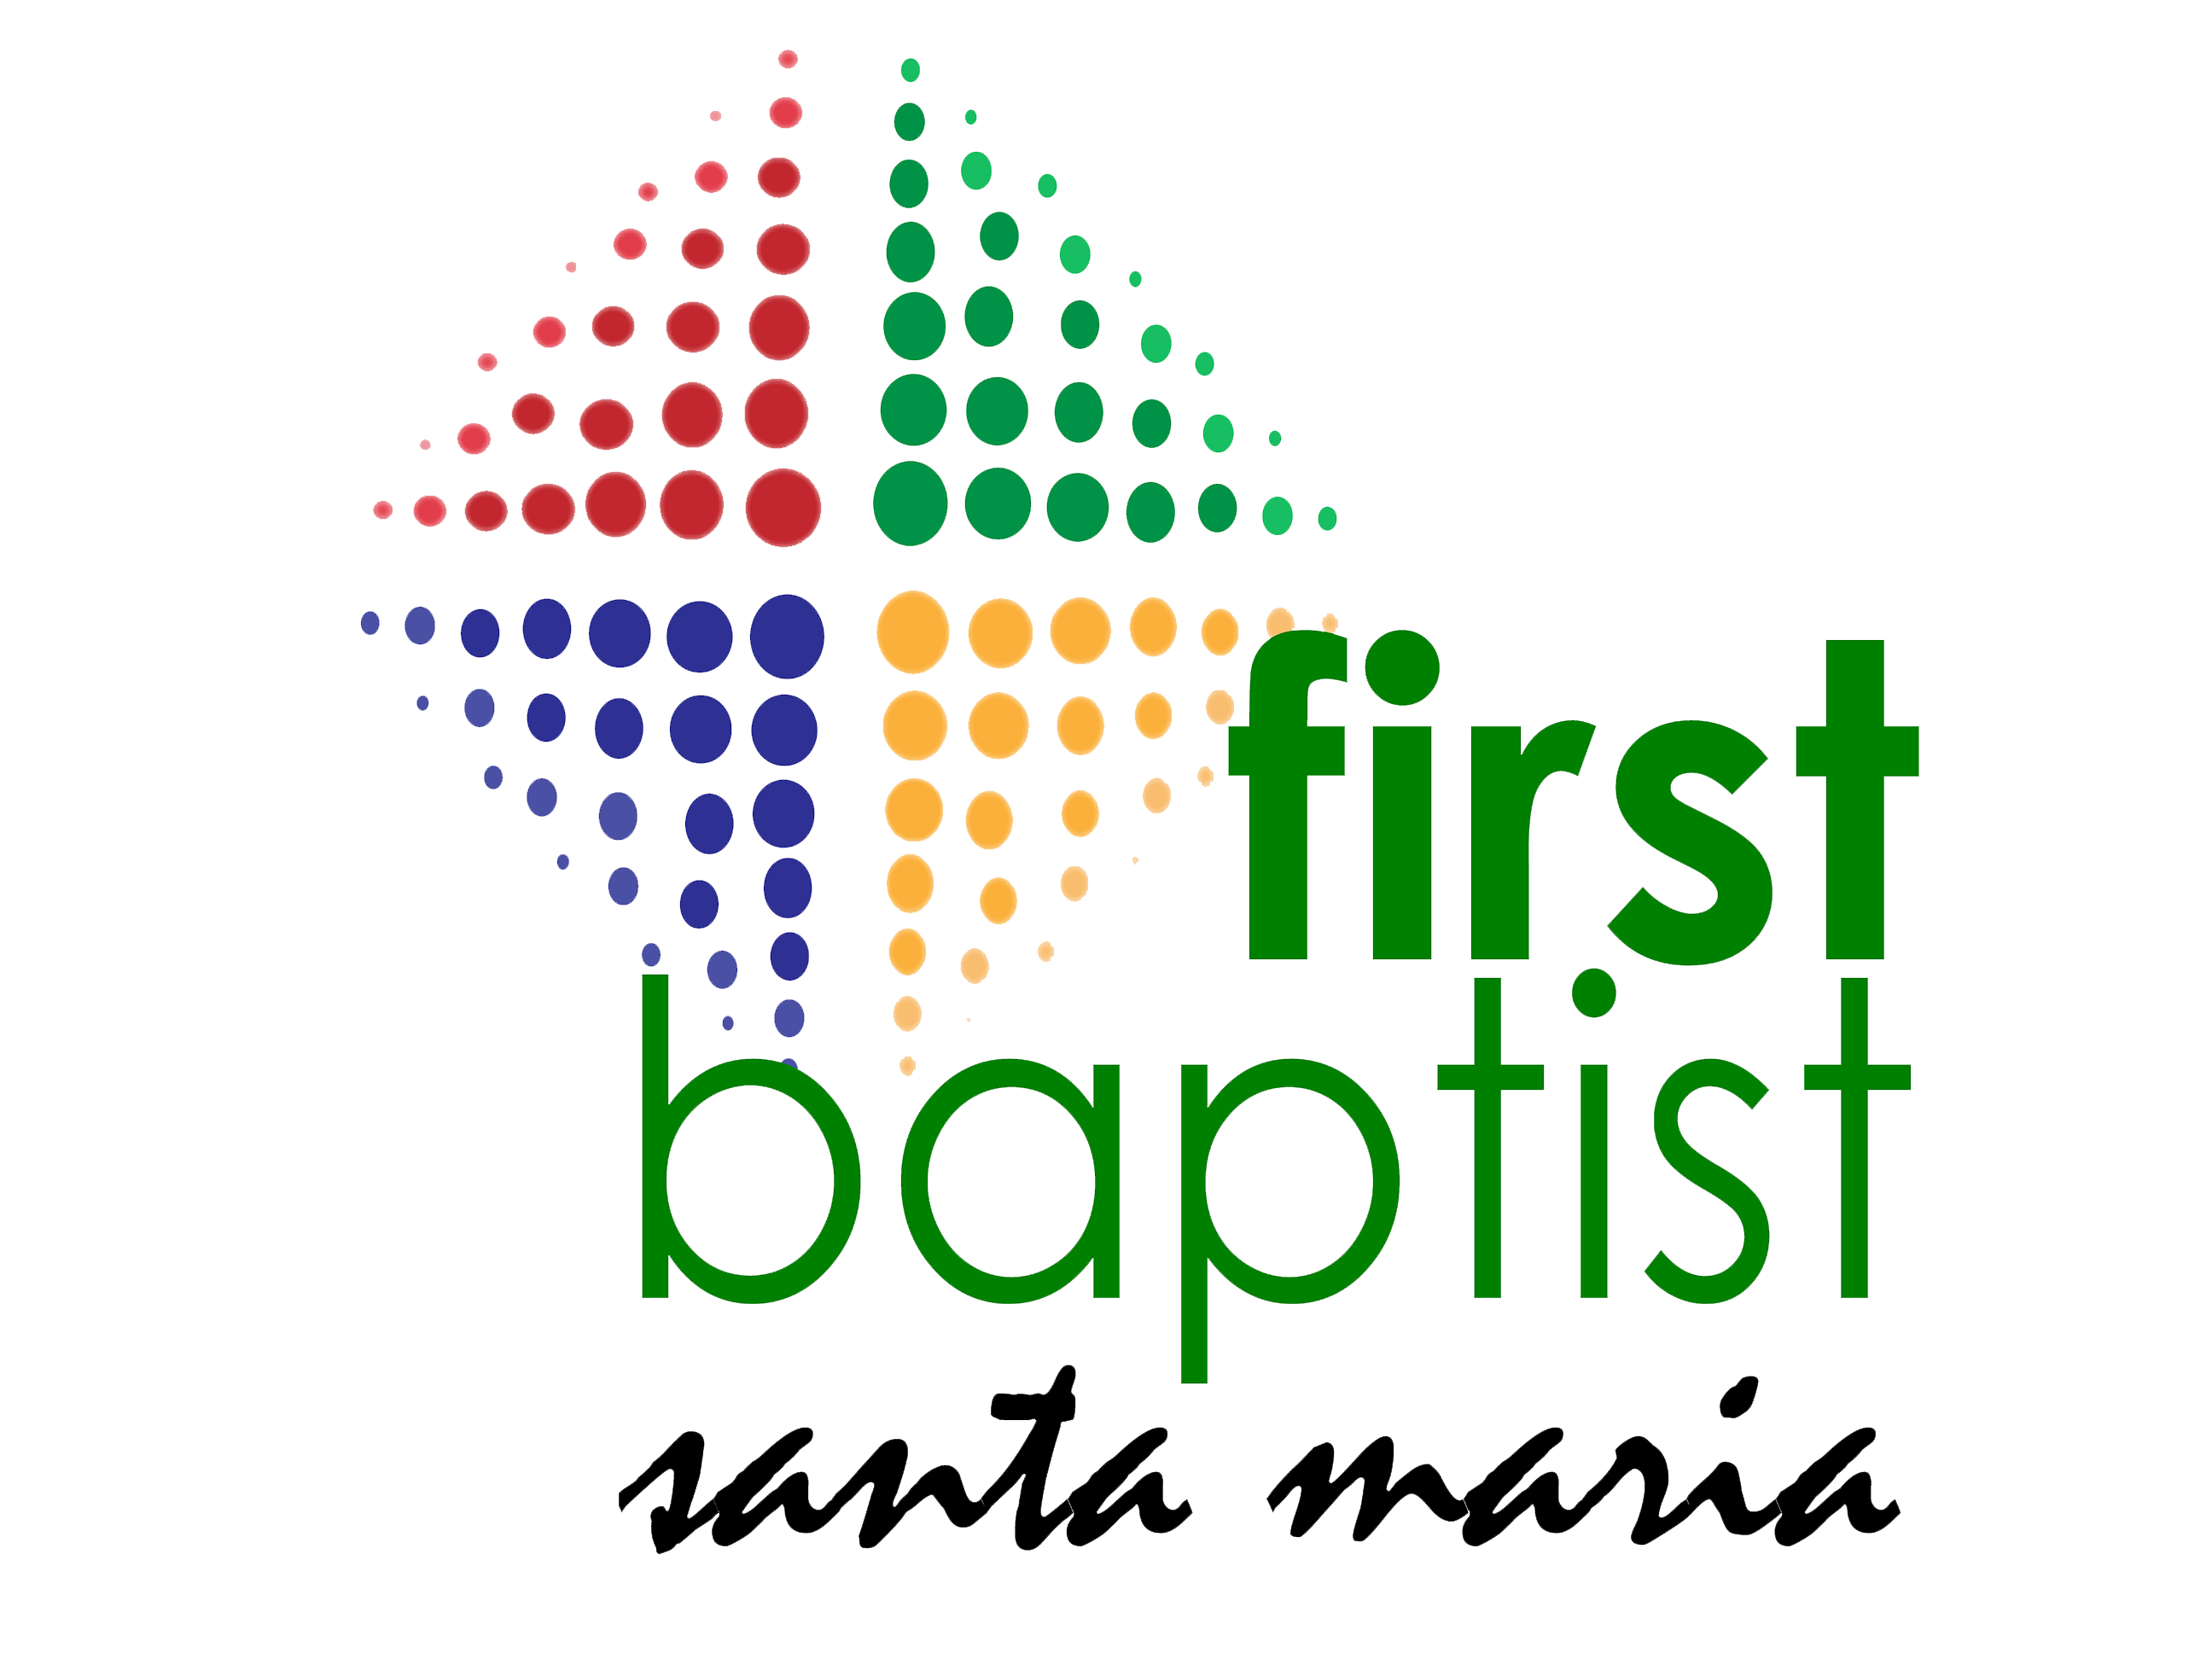 First Baptist Church of Santa Maria